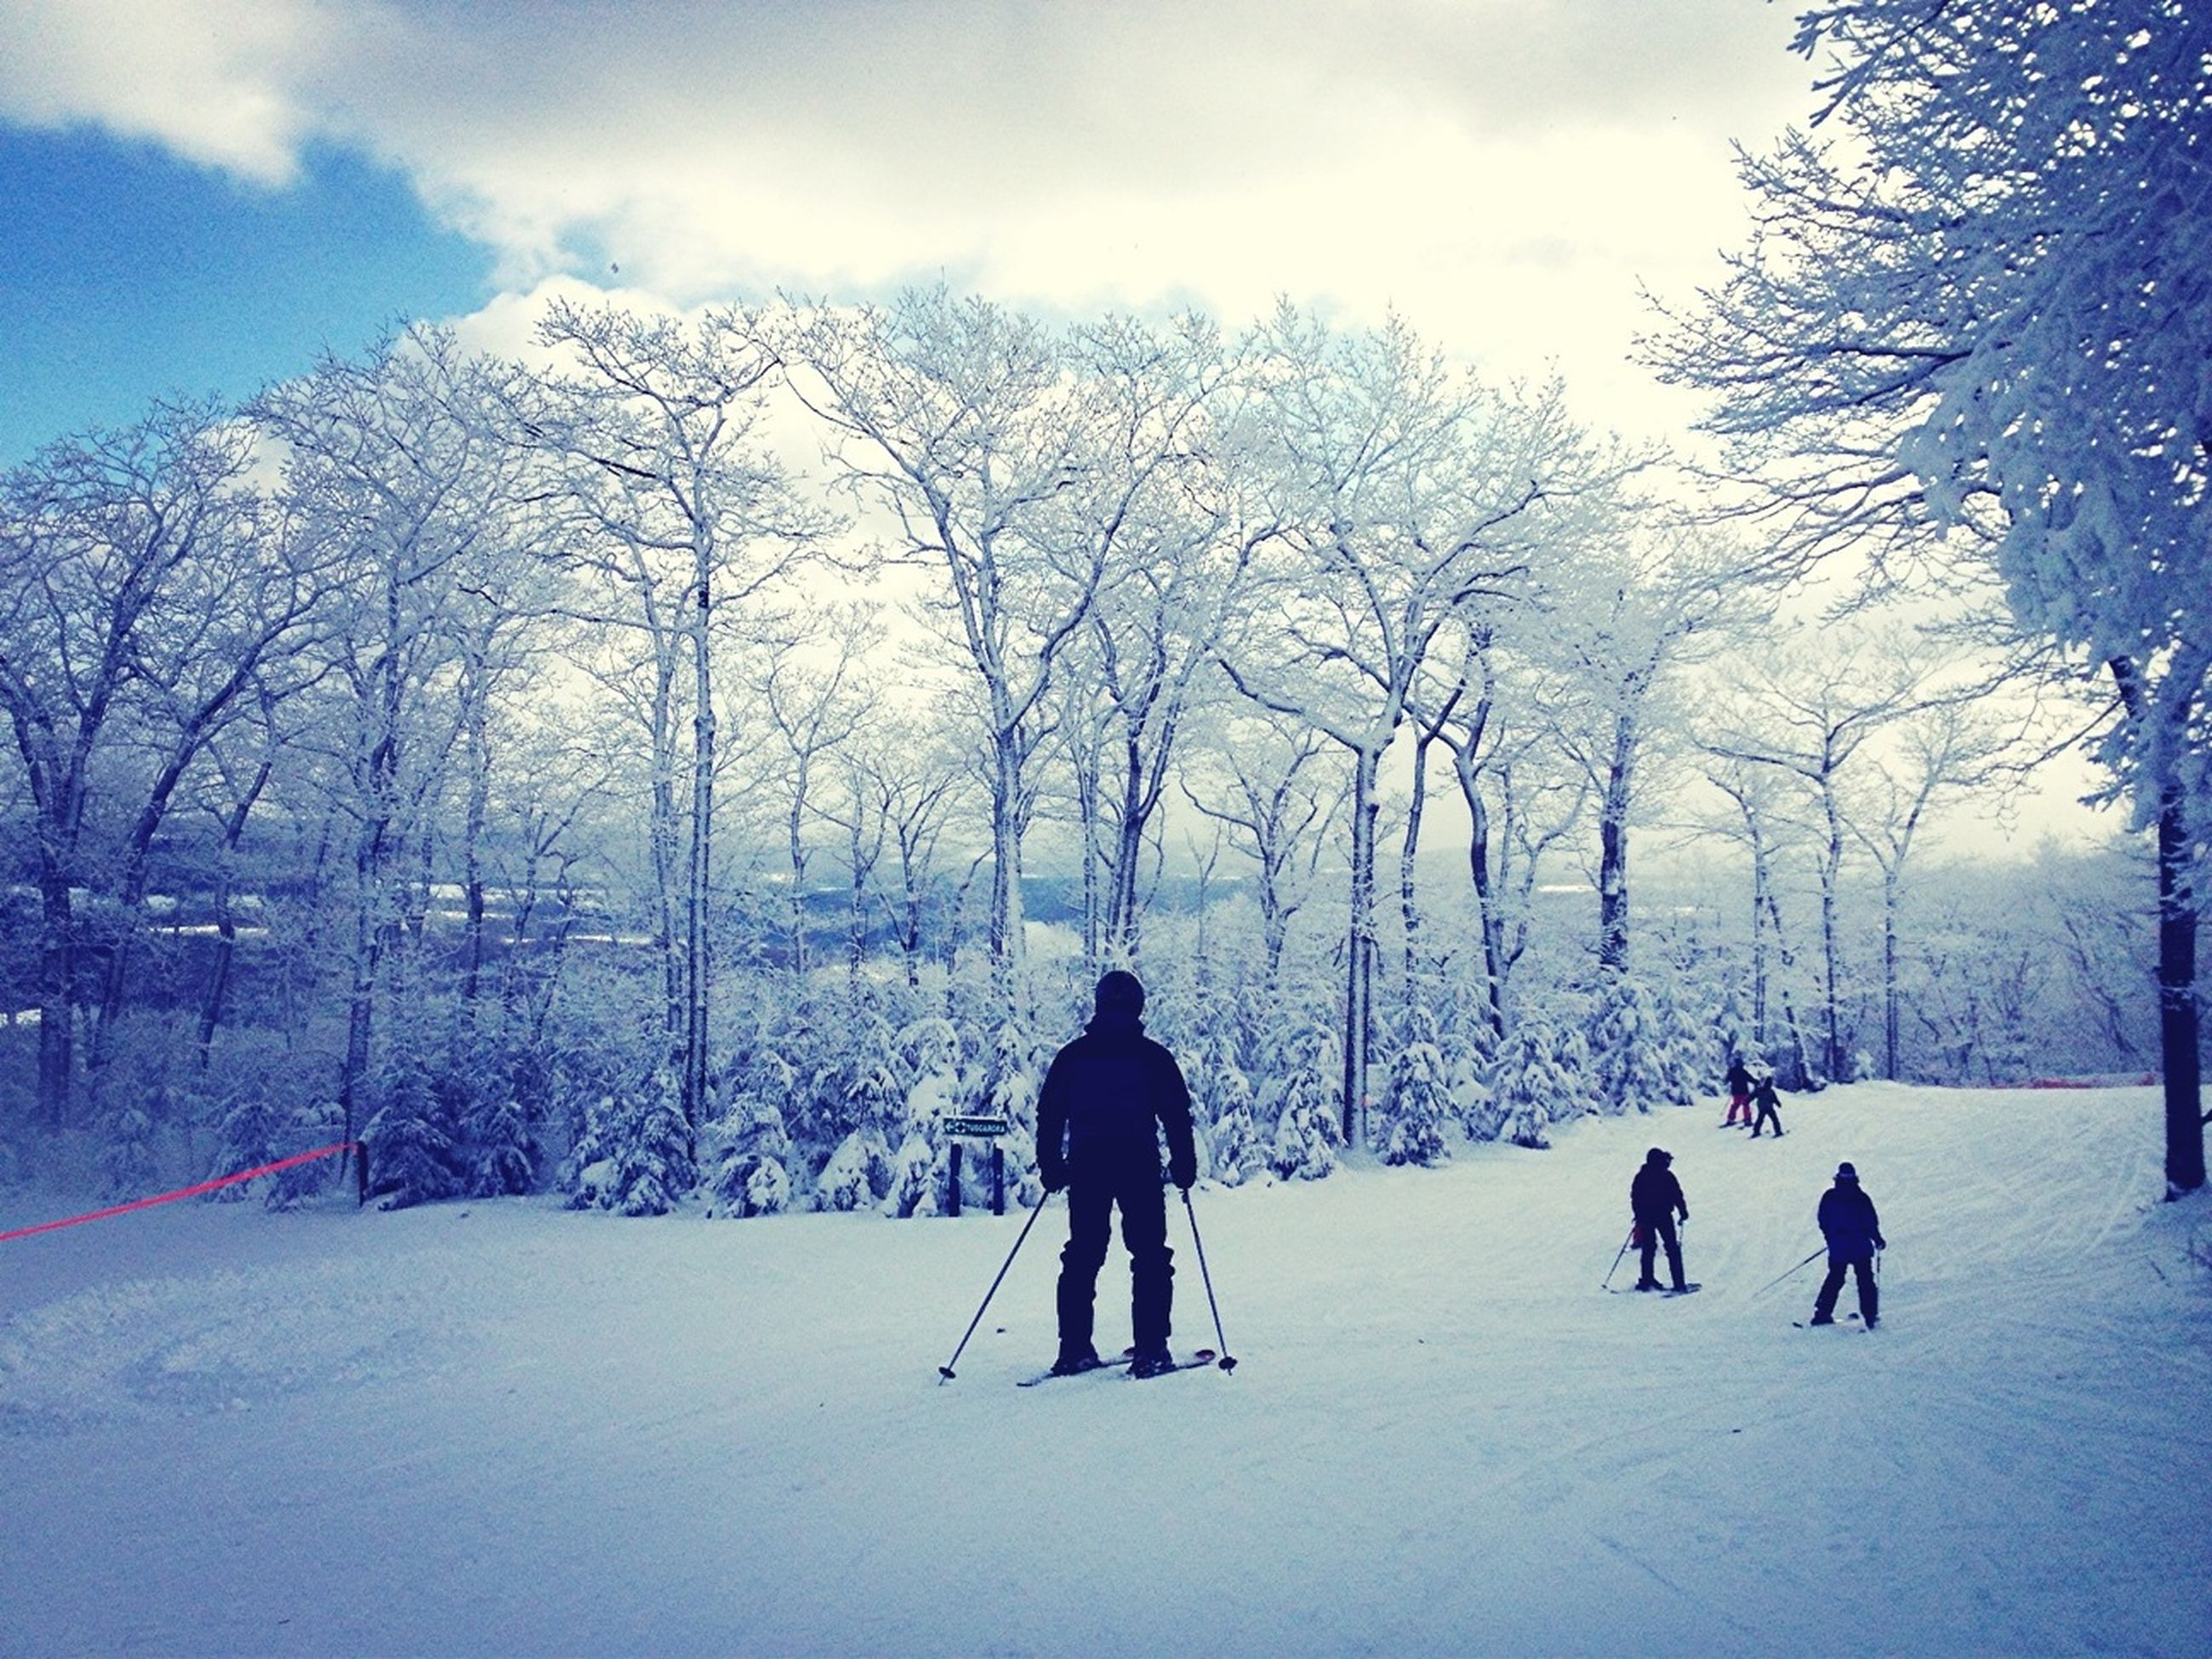 snow, winter, cold temperature, season, weather, tree, leisure activity, lifestyles, warm clothing, bare tree, men, sky, full length, landscape, tranquil scene, covering, tranquility, nature, rear view